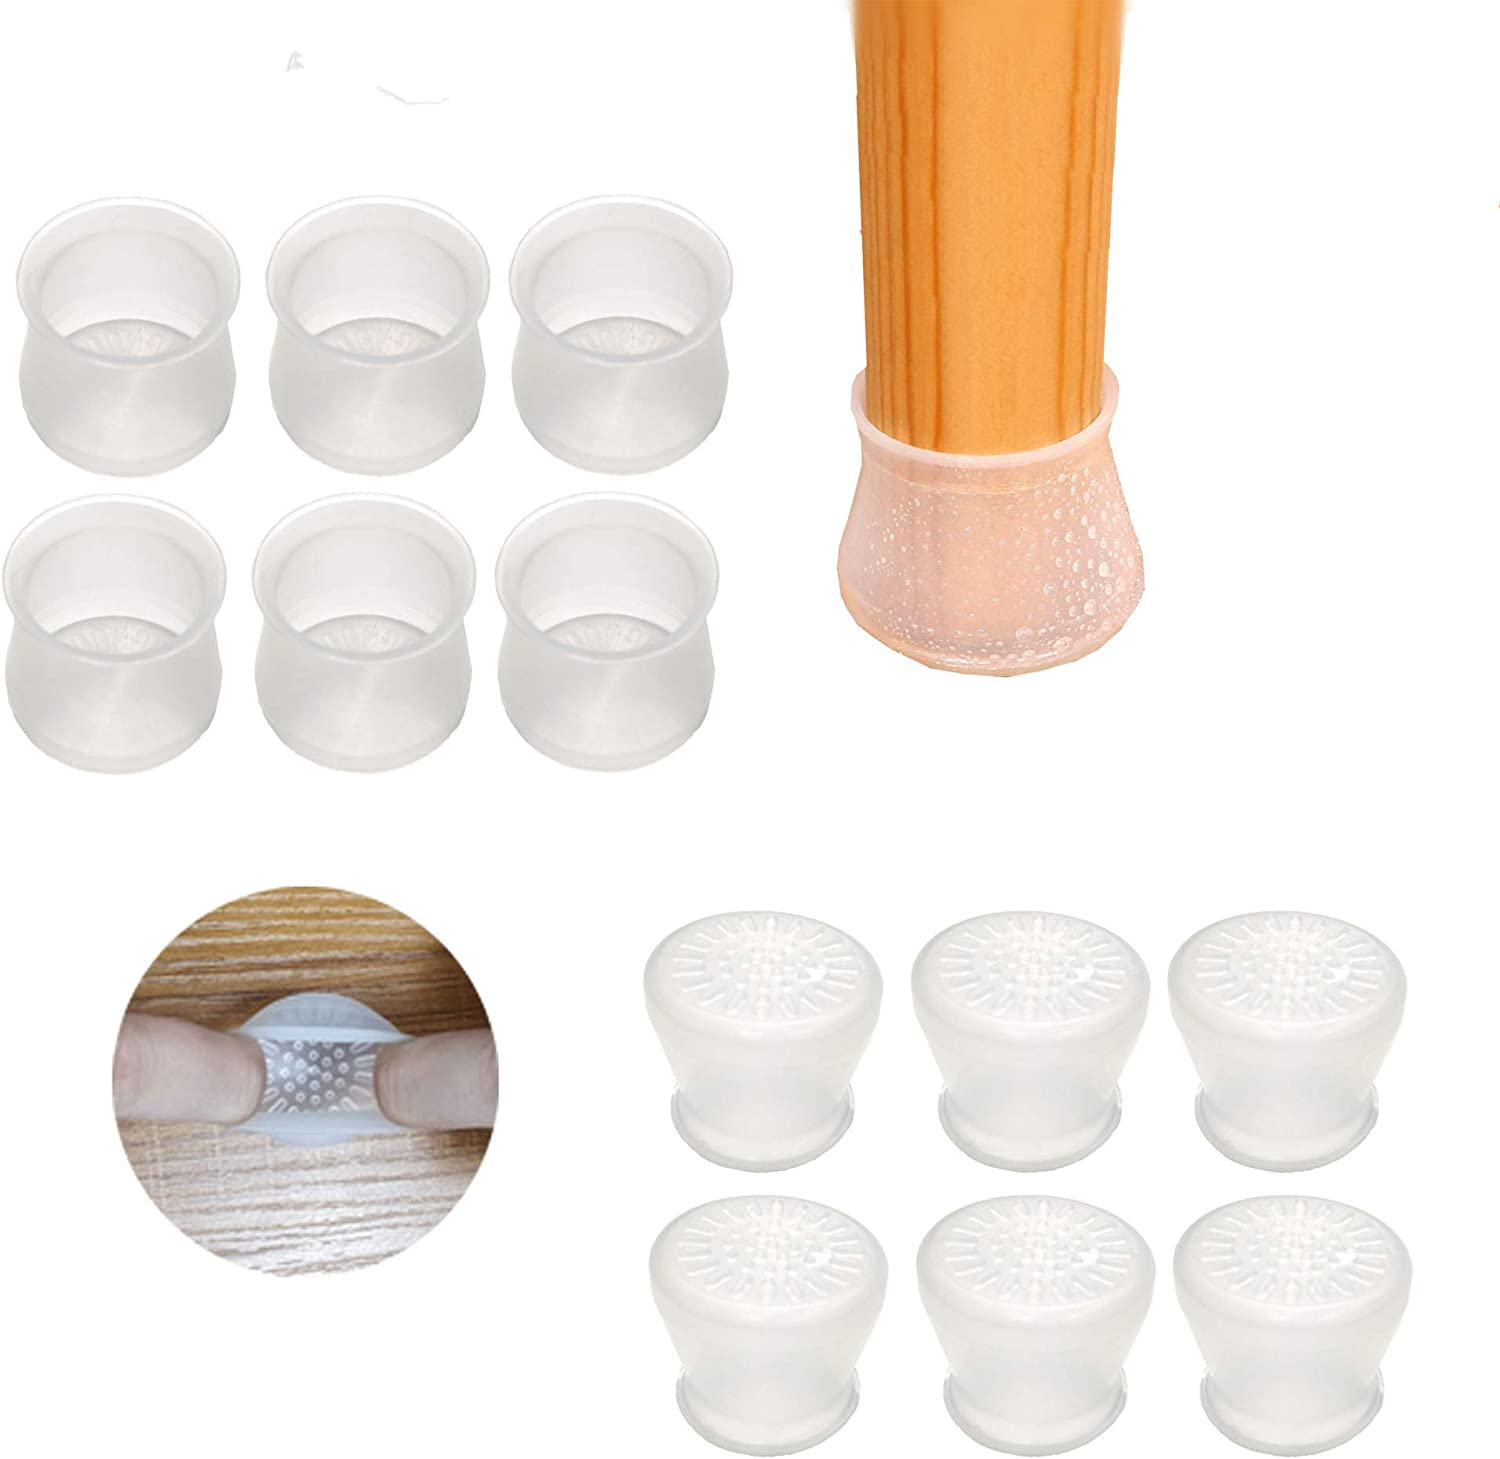 Upgraded 36 PCS Chair Leg caps|Round&Square Chair Leg Floor Protectors|Elastic Silicone Furniture Protection Cover with Anti-Slip Bottom|Prevent Scratches and Noise Without Leaving Traces.